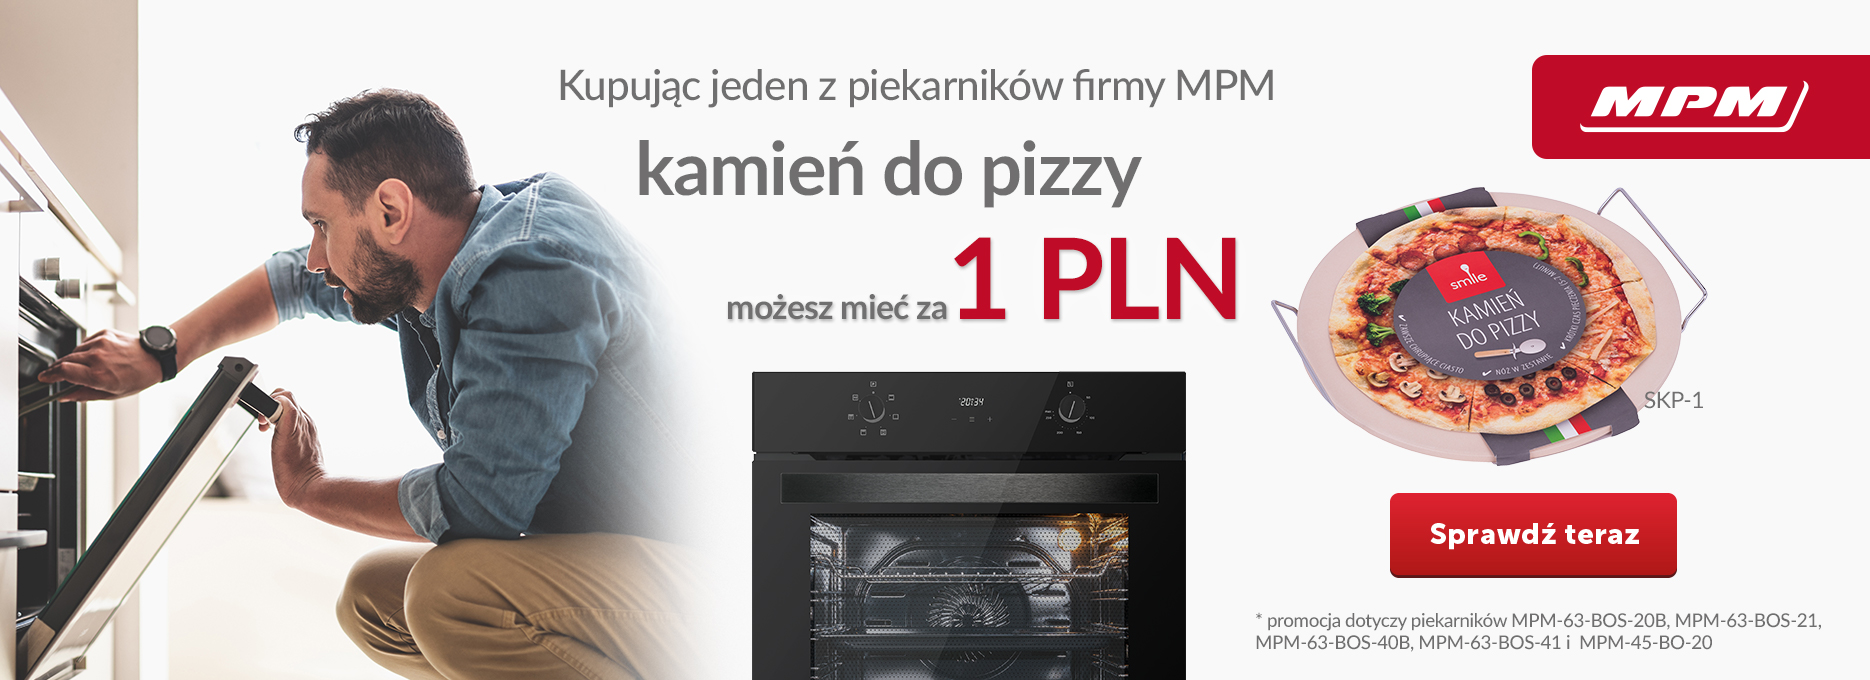 MPM - kamień do pizzy